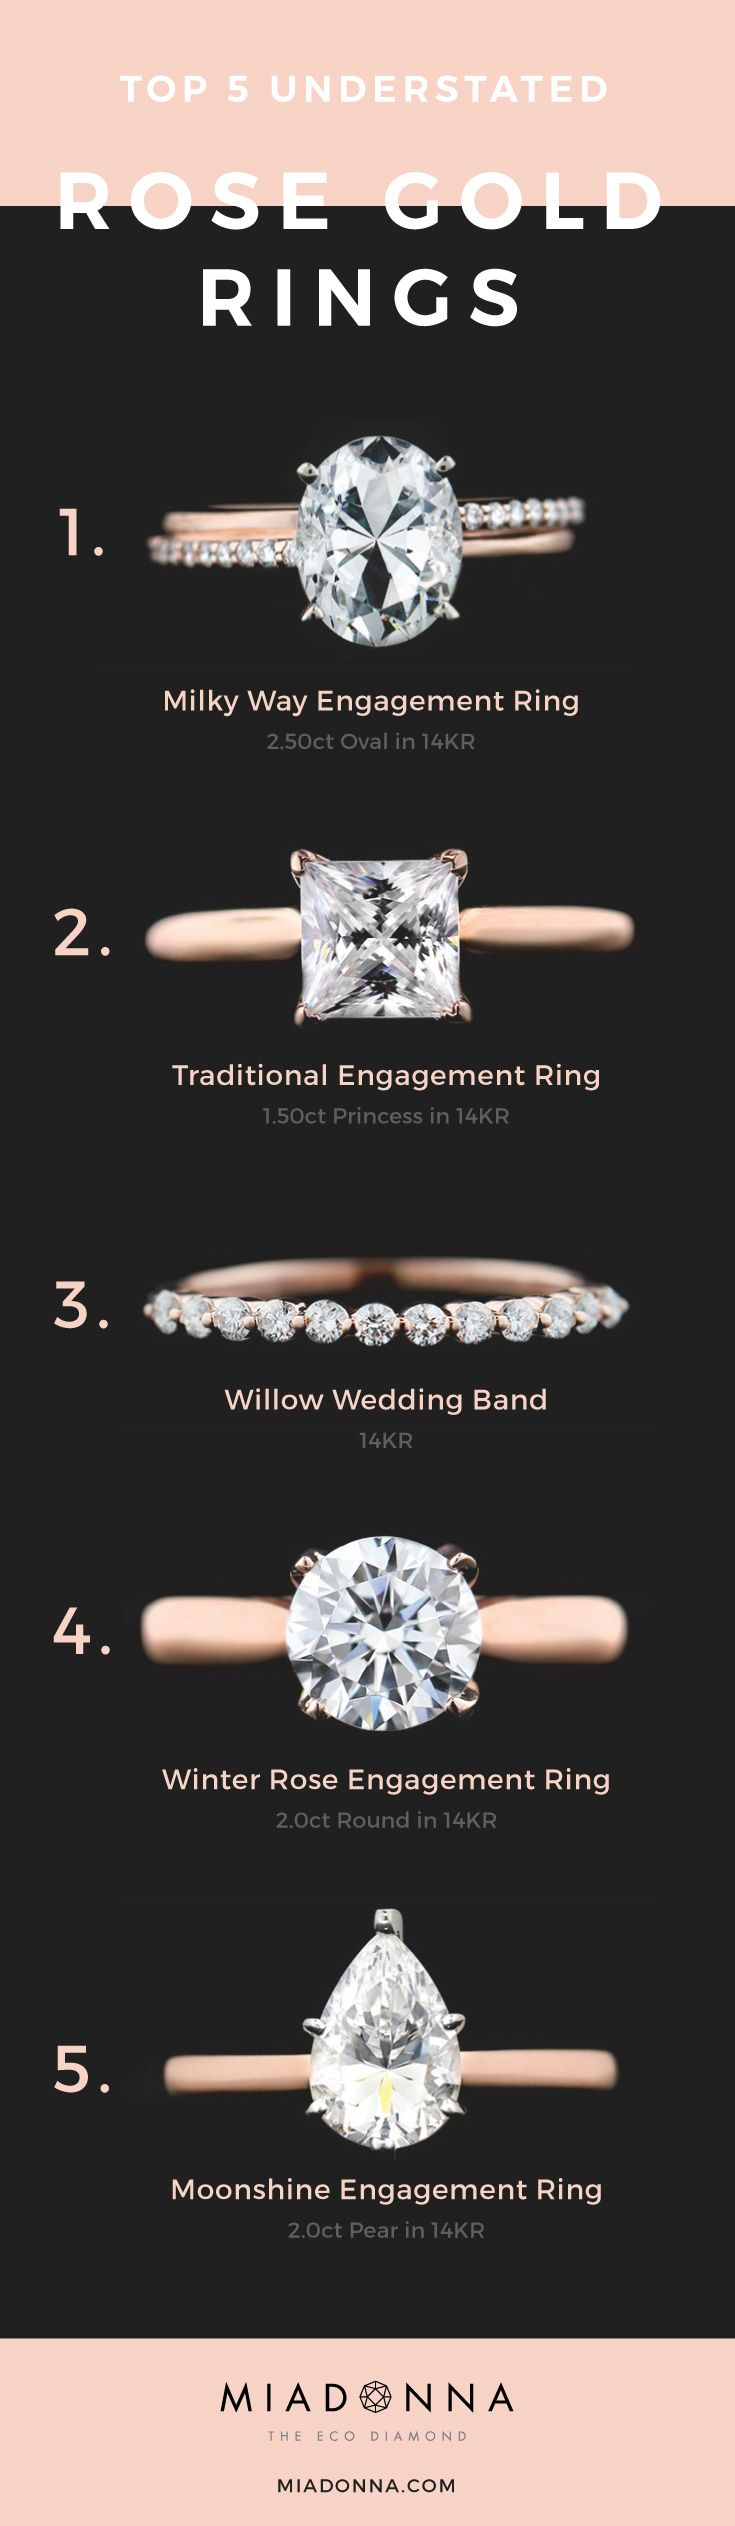 5 Stunning Rose Gold Engagement Rings